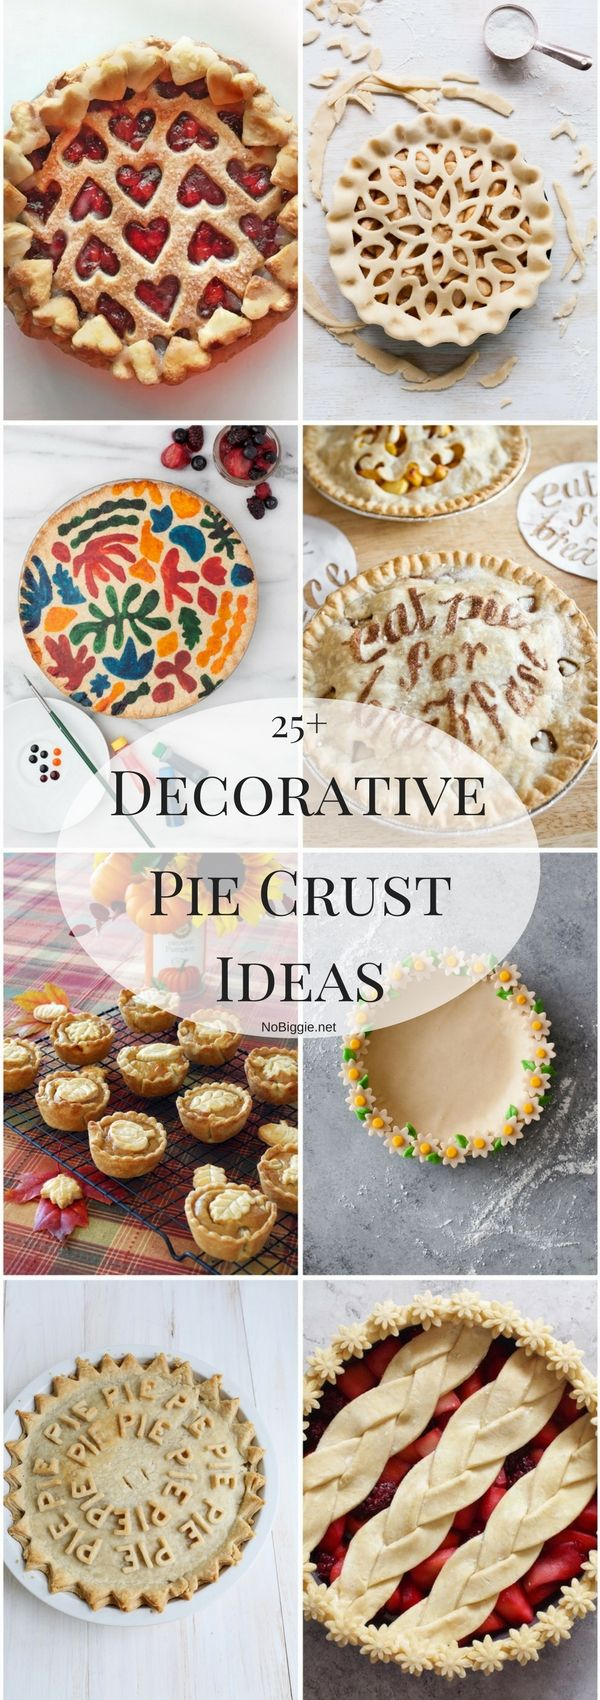 25+ Decorative Pie Crust Ideas | NoBiggie.net                                                                                                                                                                                 More